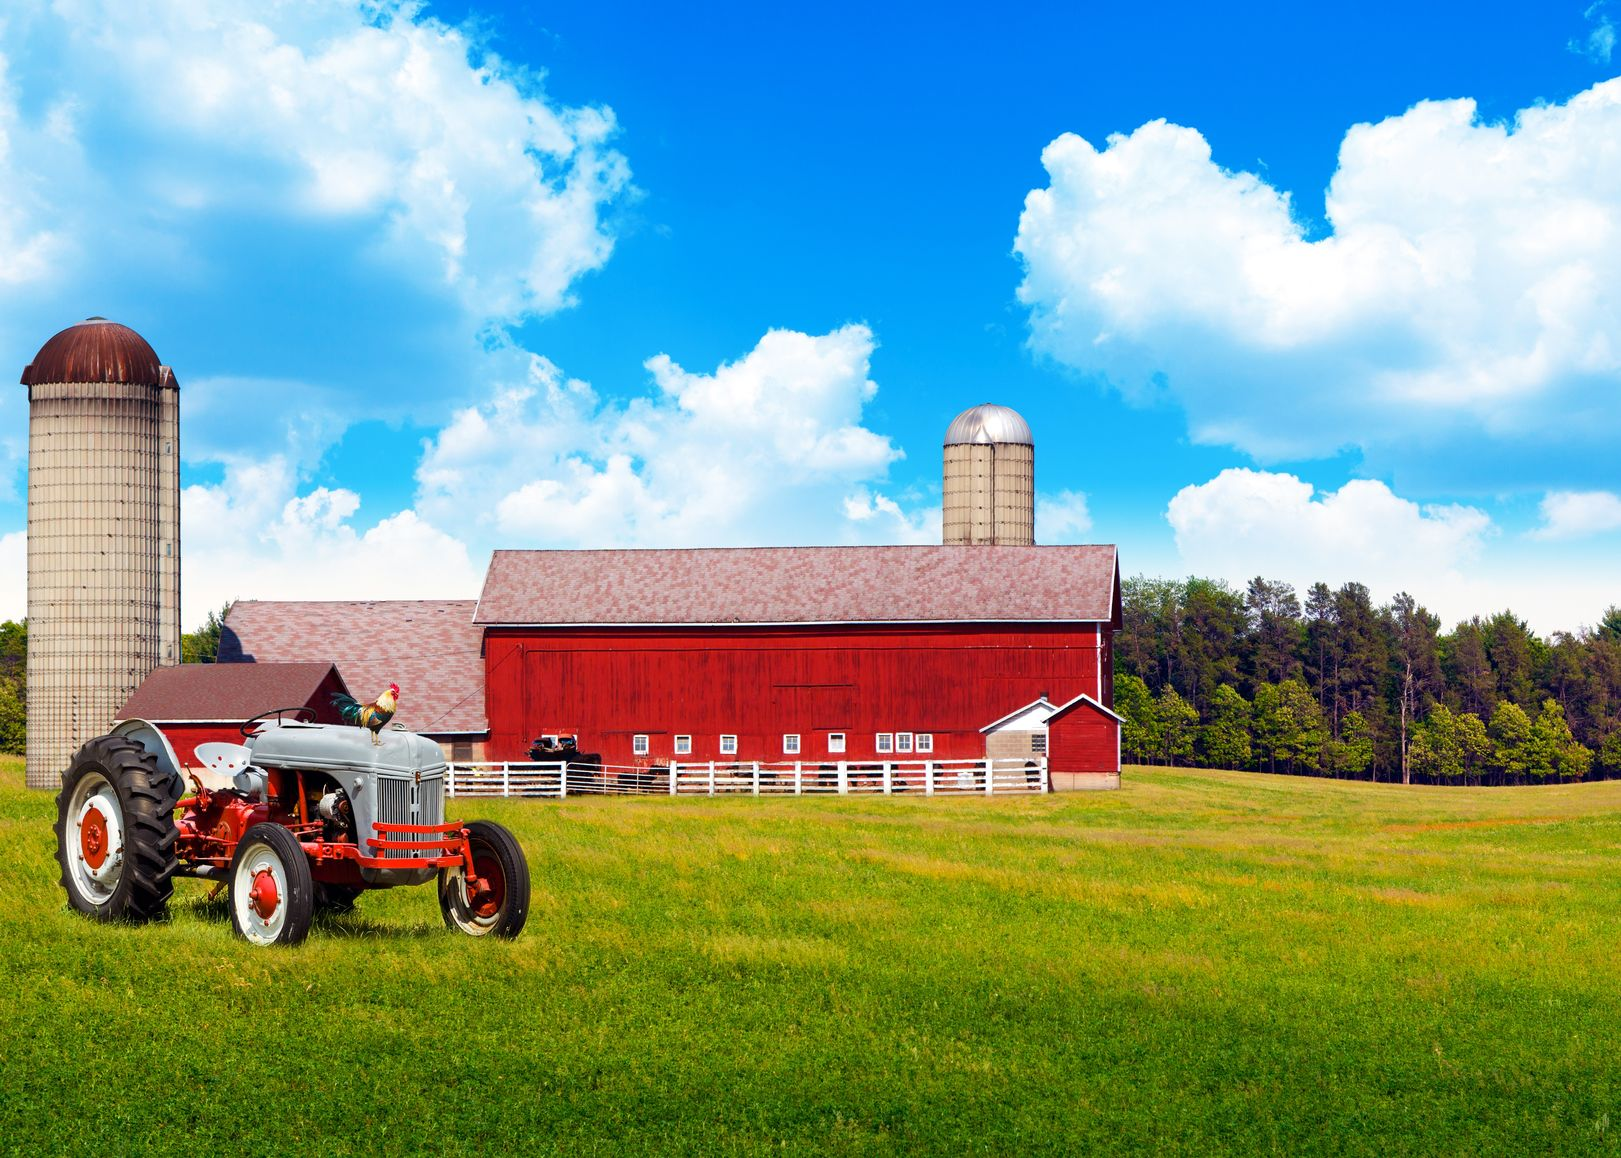 Sacramento, CA. Farm & Ranch Insurance